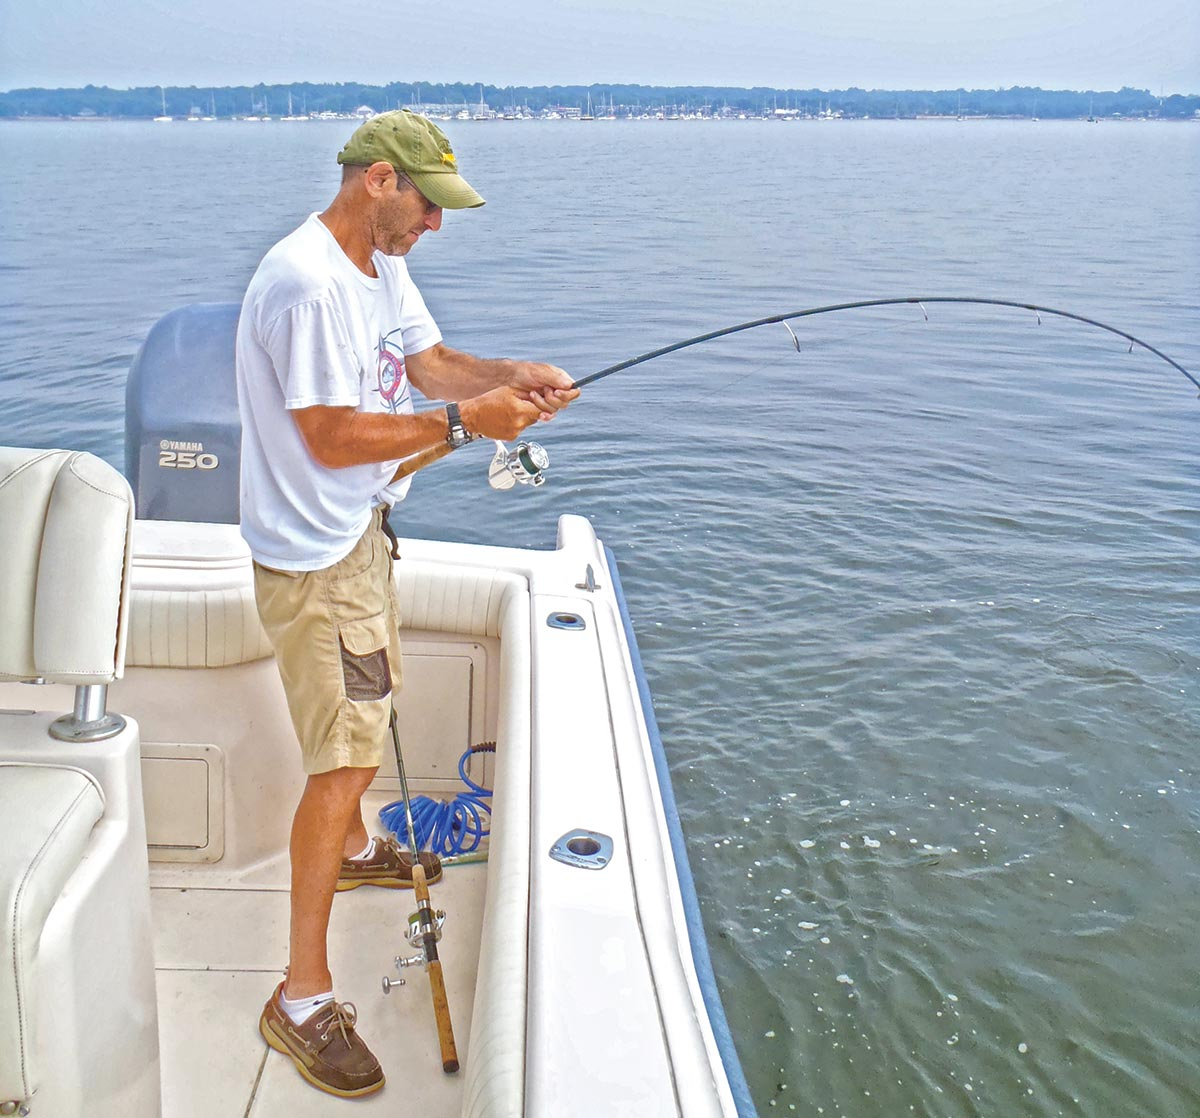 Using quality tackle makes casting, presentations, and fighting fish a pleasure